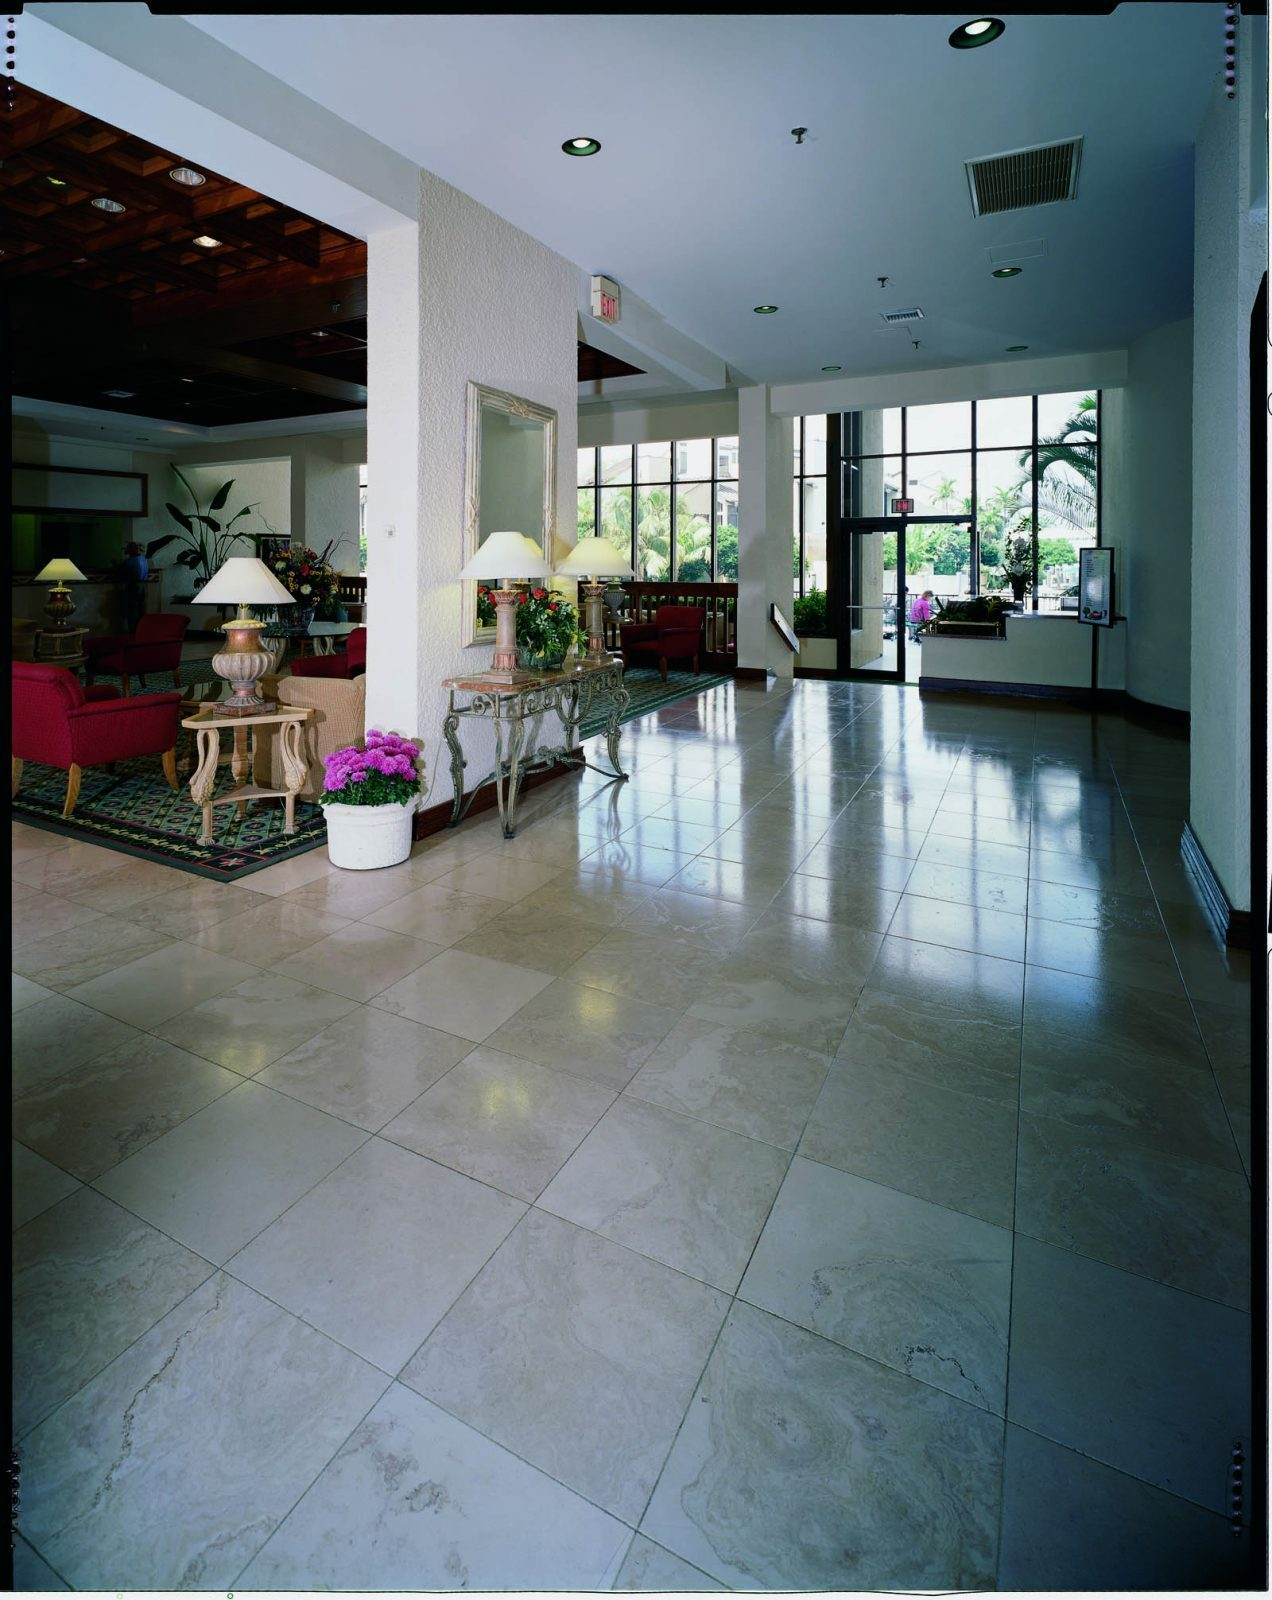 How To Clean A Marble Floor Filacleaner